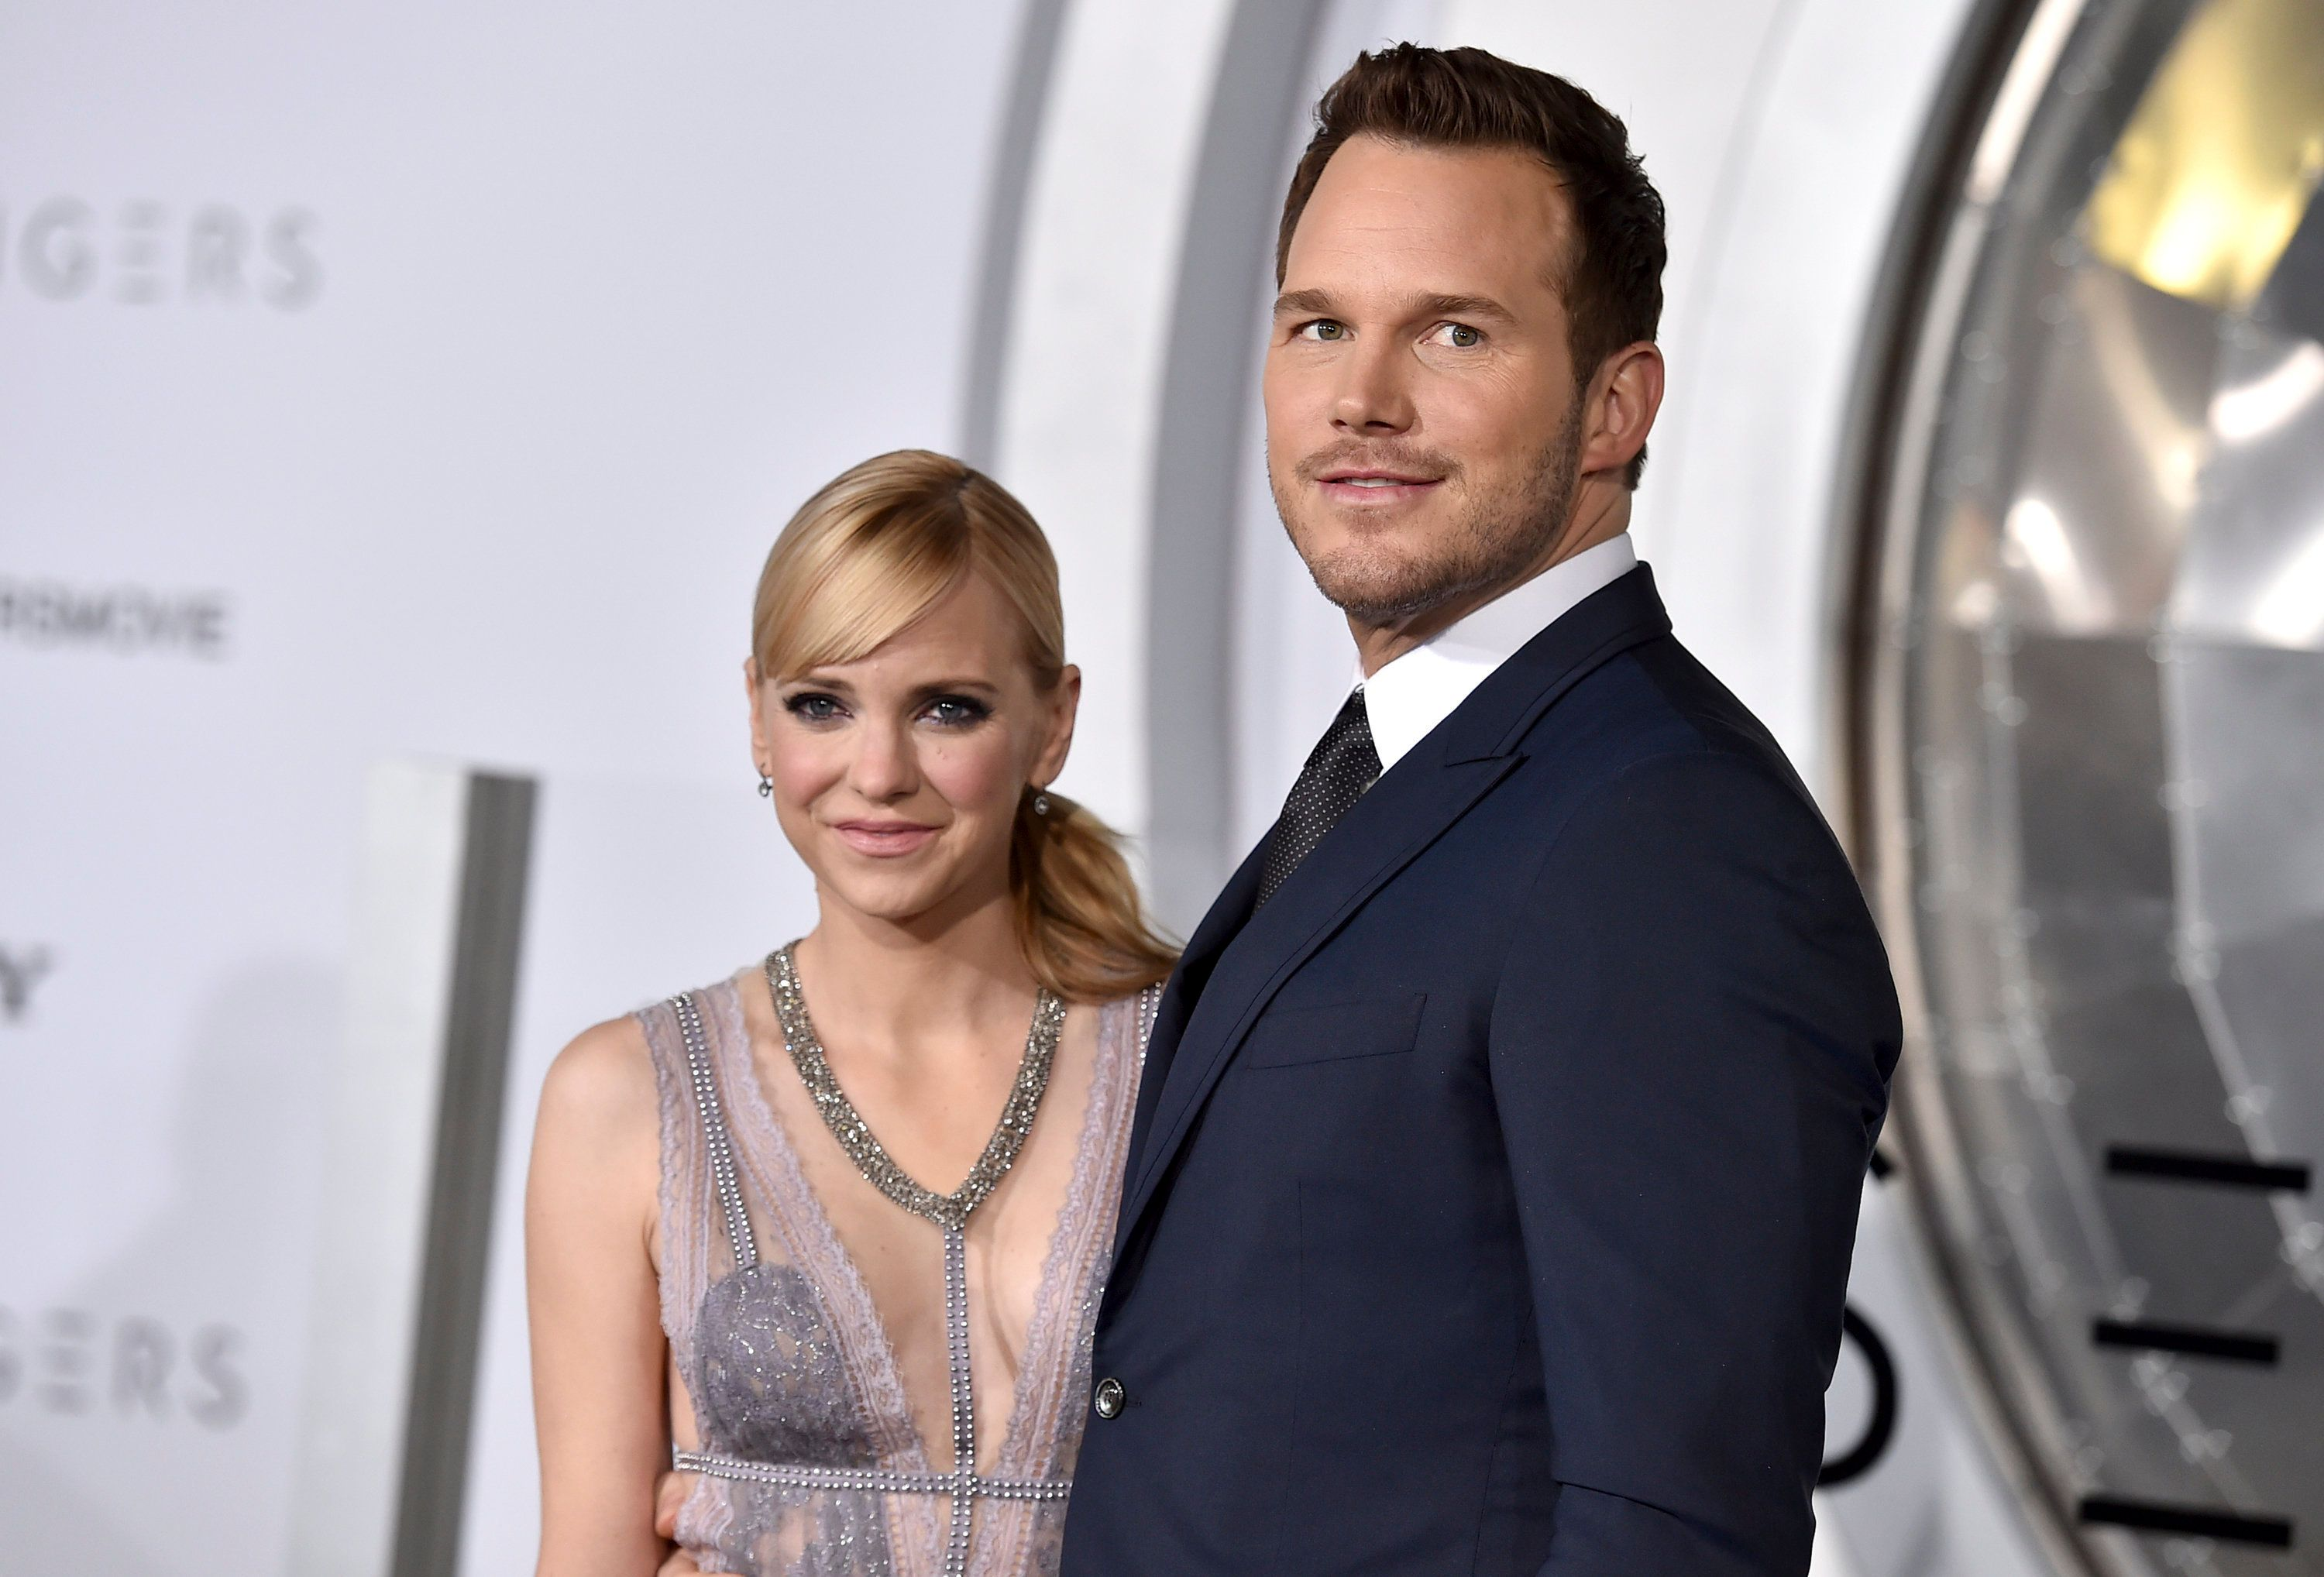 """Anna Faris and Chris Pratt arrive at the premiere of """"Passengers"""" in 2017."""